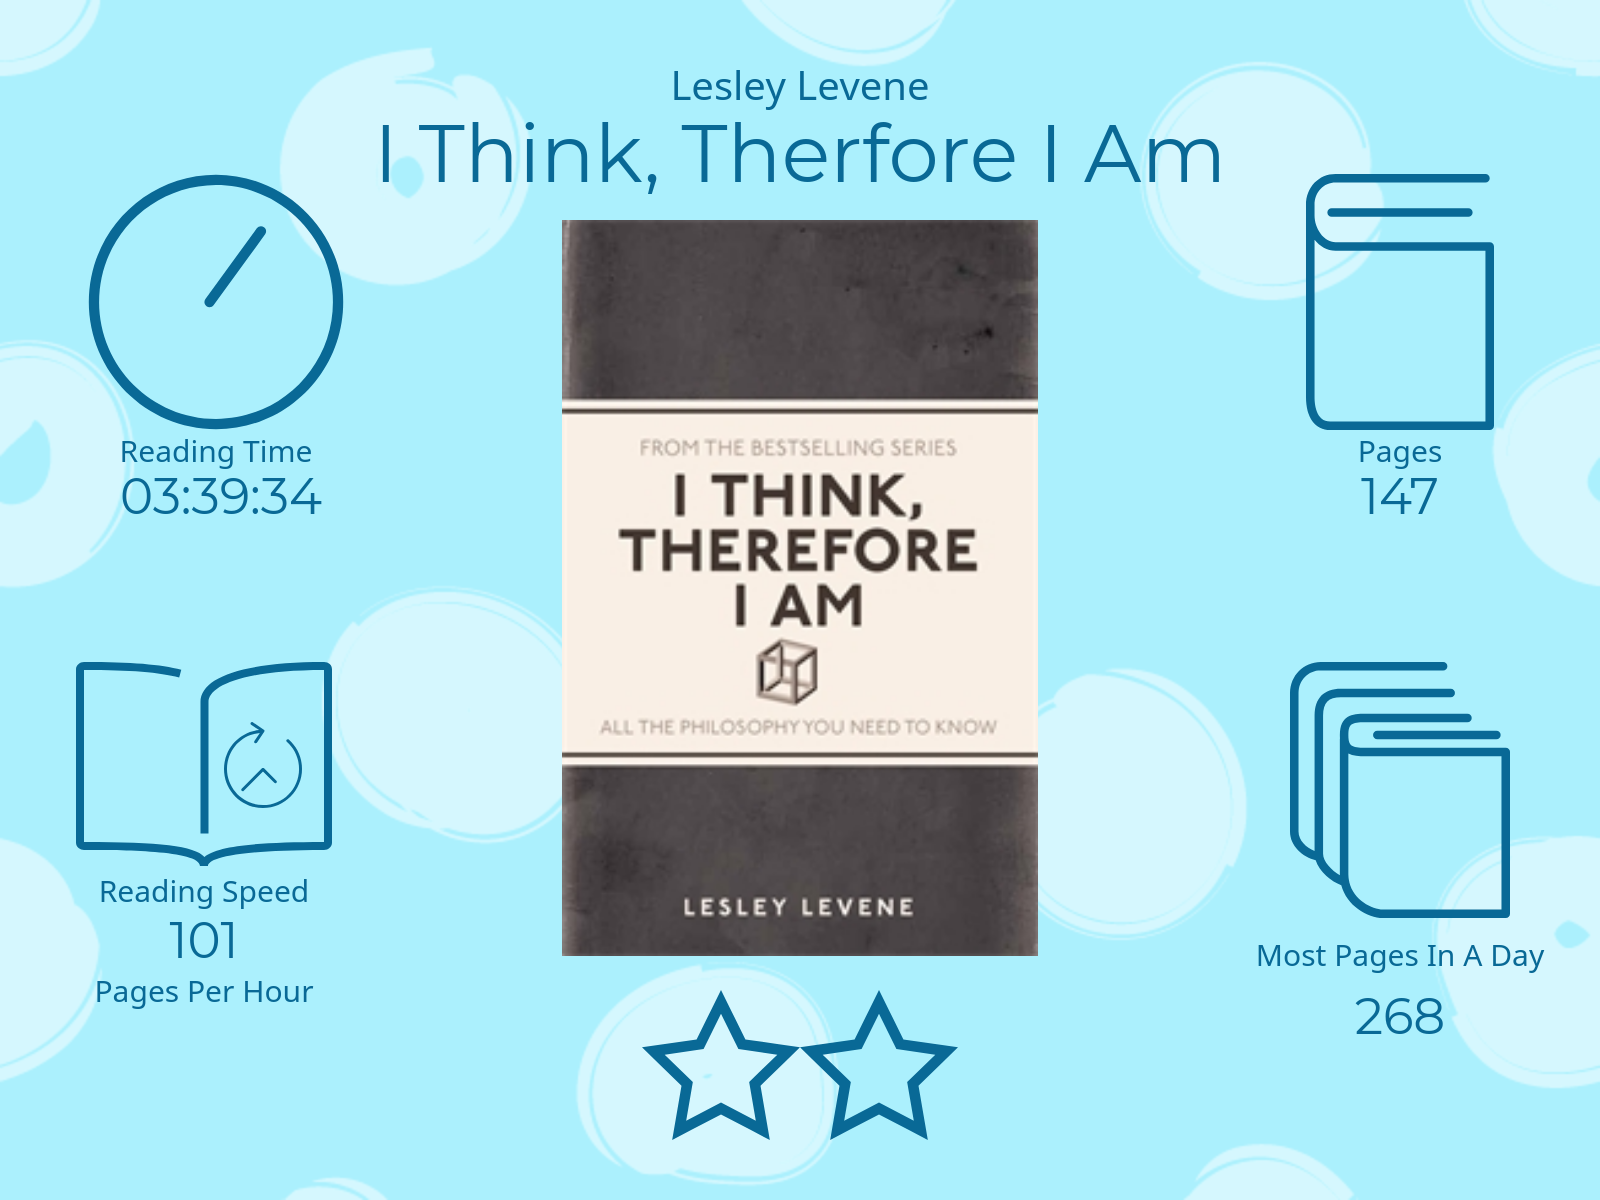 I Think, Therefore I Am by Lesley Levene 2 Stars 3 Hours 39 Minutes 34 Seconds reading time 147 Pages Most pages read in a day 268 101 Pages per Hour